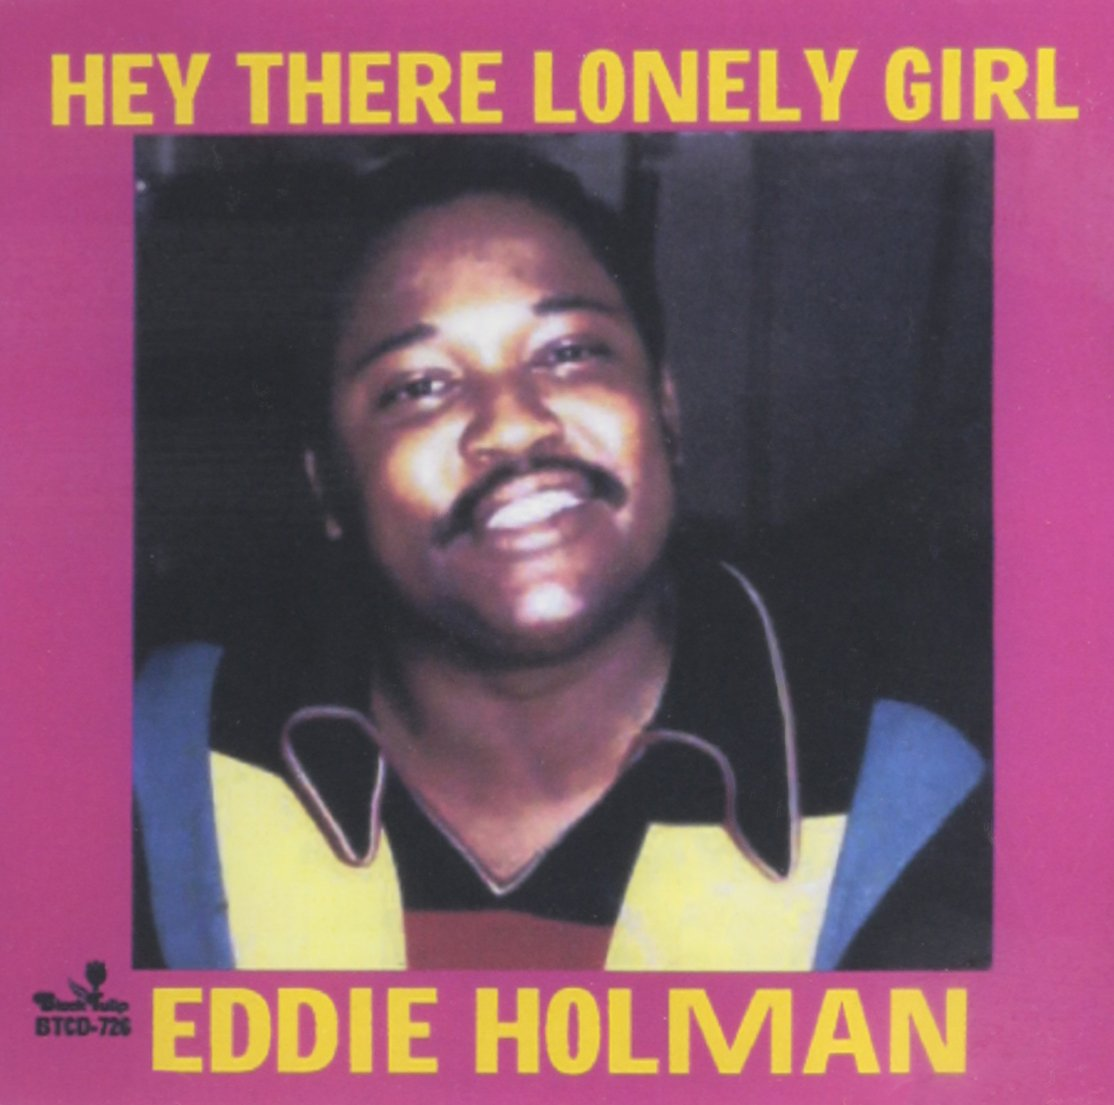 Image result for eddie holman hey there lonely girl single images